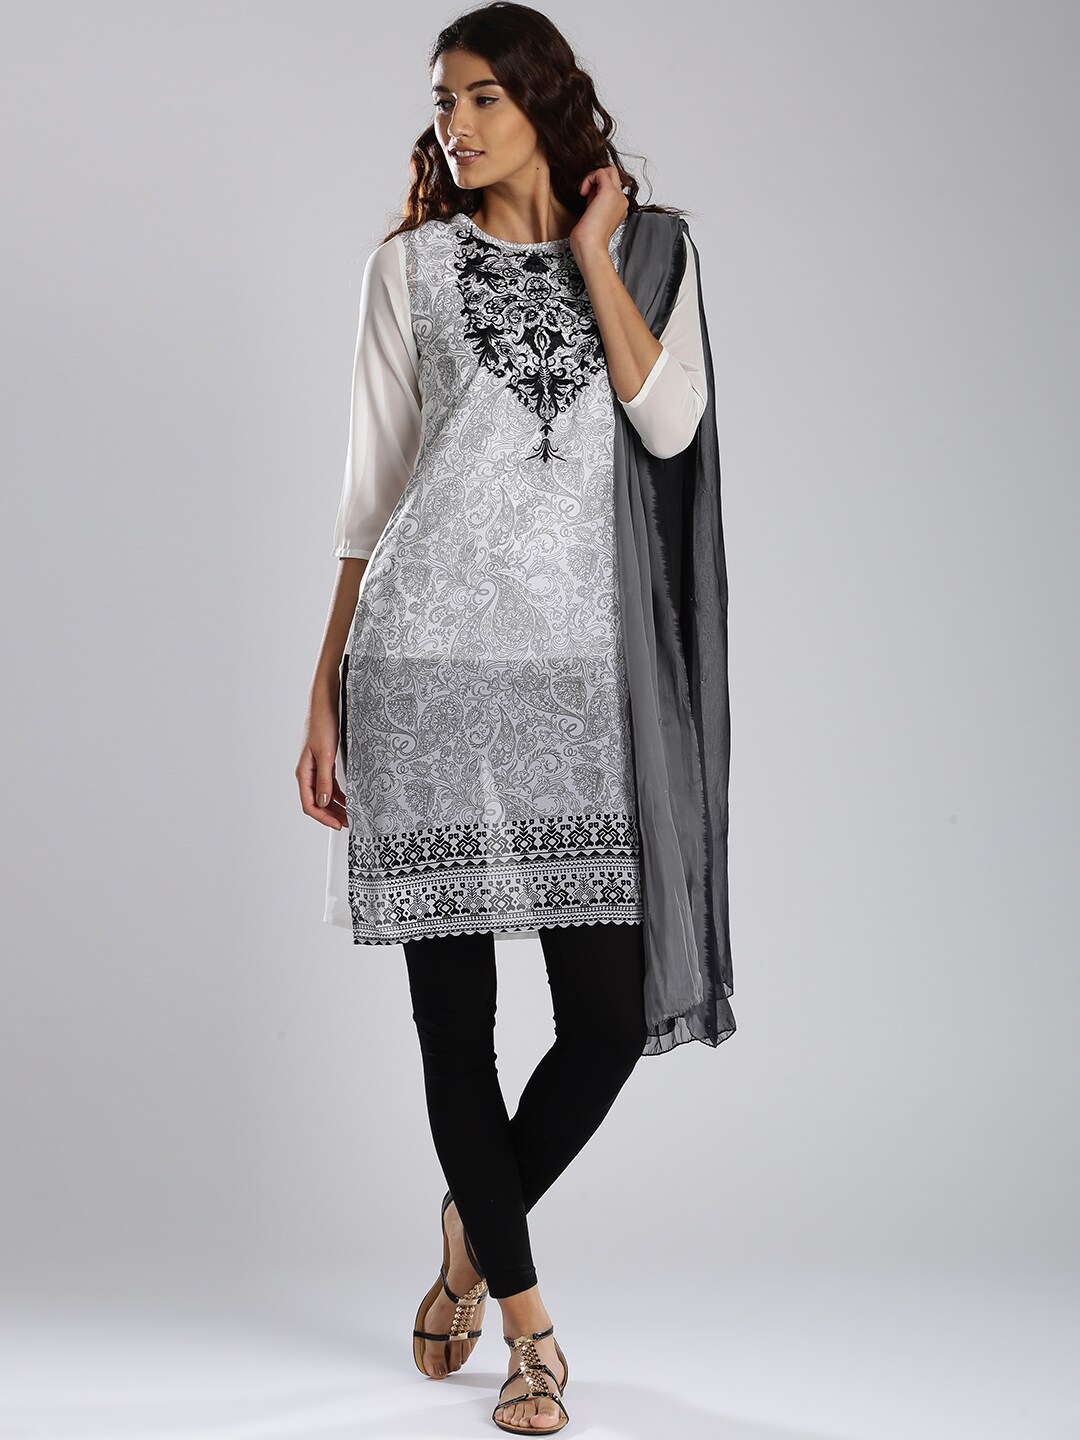 IMARA by Shraddha Kapoor Black & White Printed Churidar Kurta with Dupatta